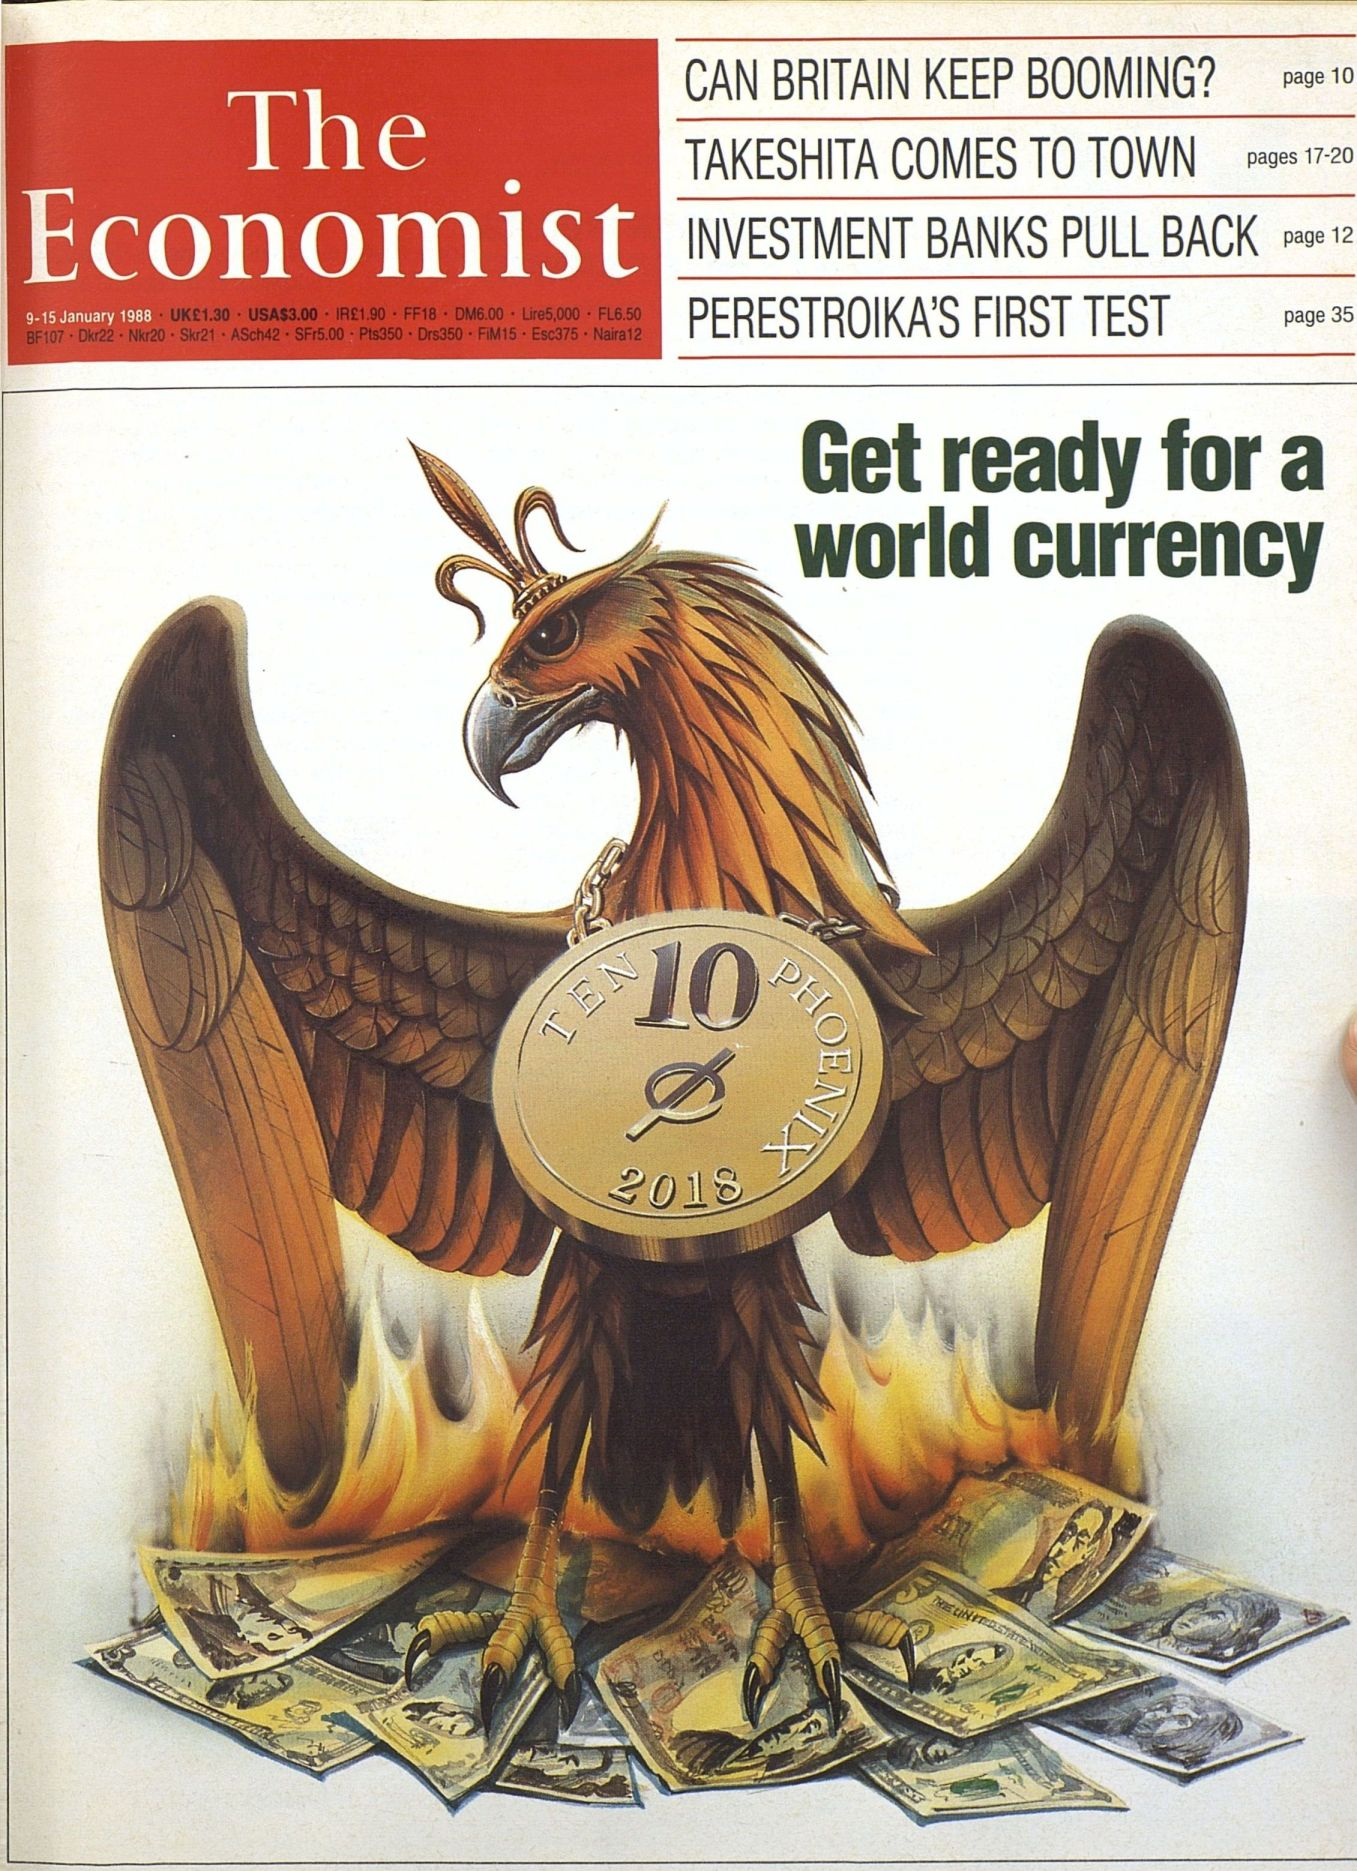 Will Satoshi Nakamoto Tweet Today,? Some Believe a Prediction From 1988 Says So 15